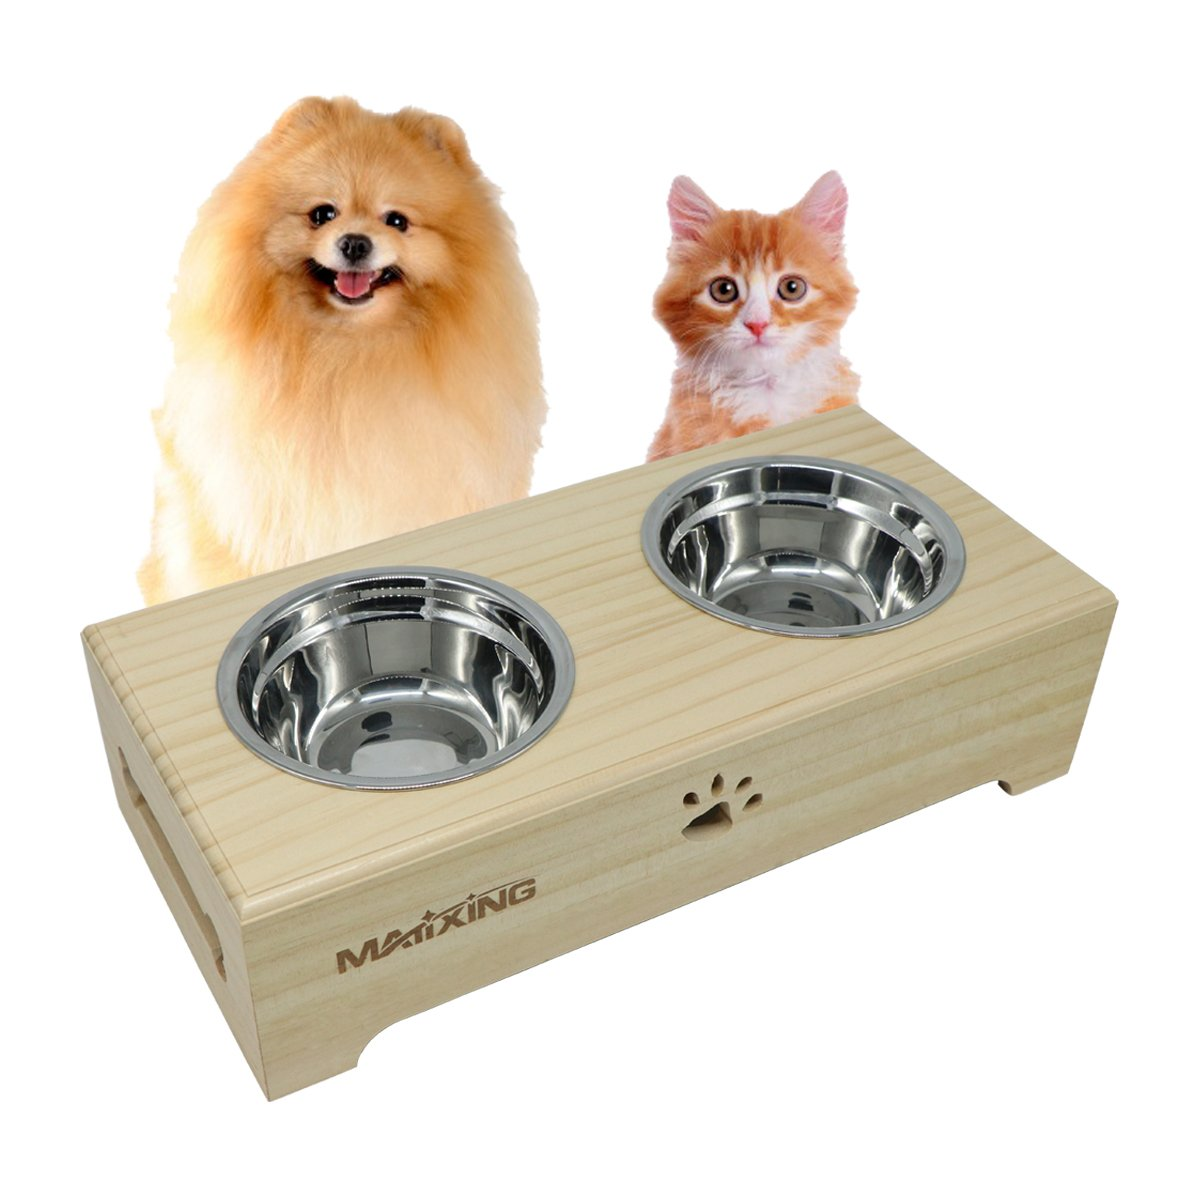 Elevated Dog and Cat Wood Pet Feeder, Double Bowl Raised Stand Comes with Two Stainless Steel Bowls